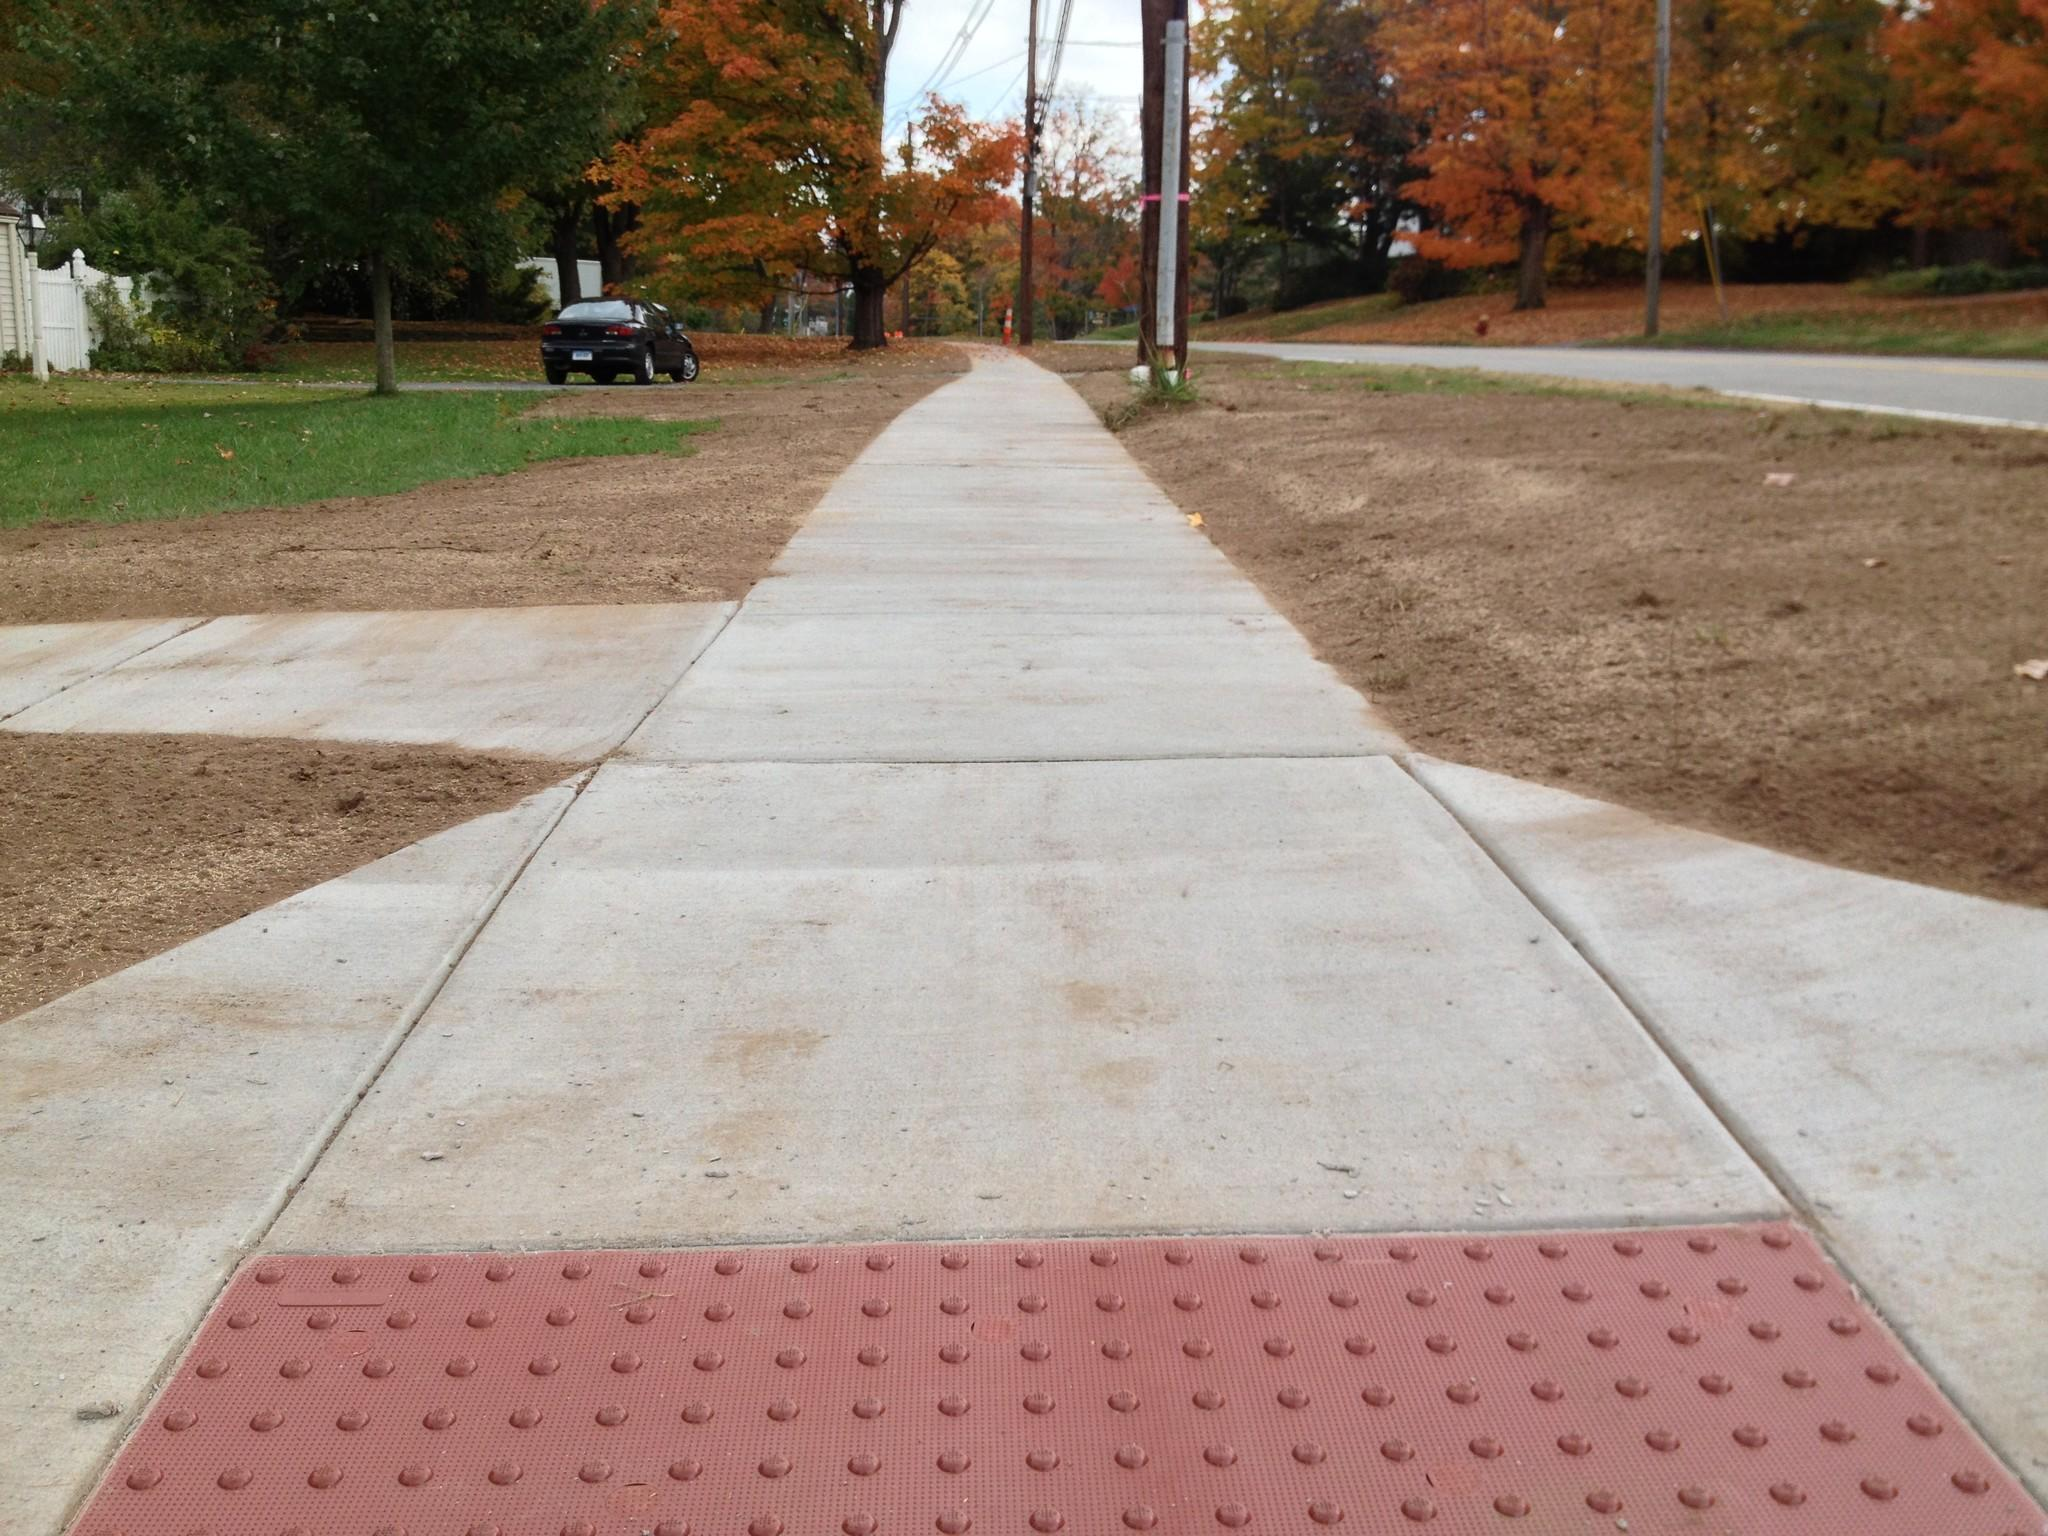 The town council agreed to spend $40,000 set aside by a developer for a ribbon of new sidewalks along Route 83 or Manchester Road near the intersection with Hebron Avenue.